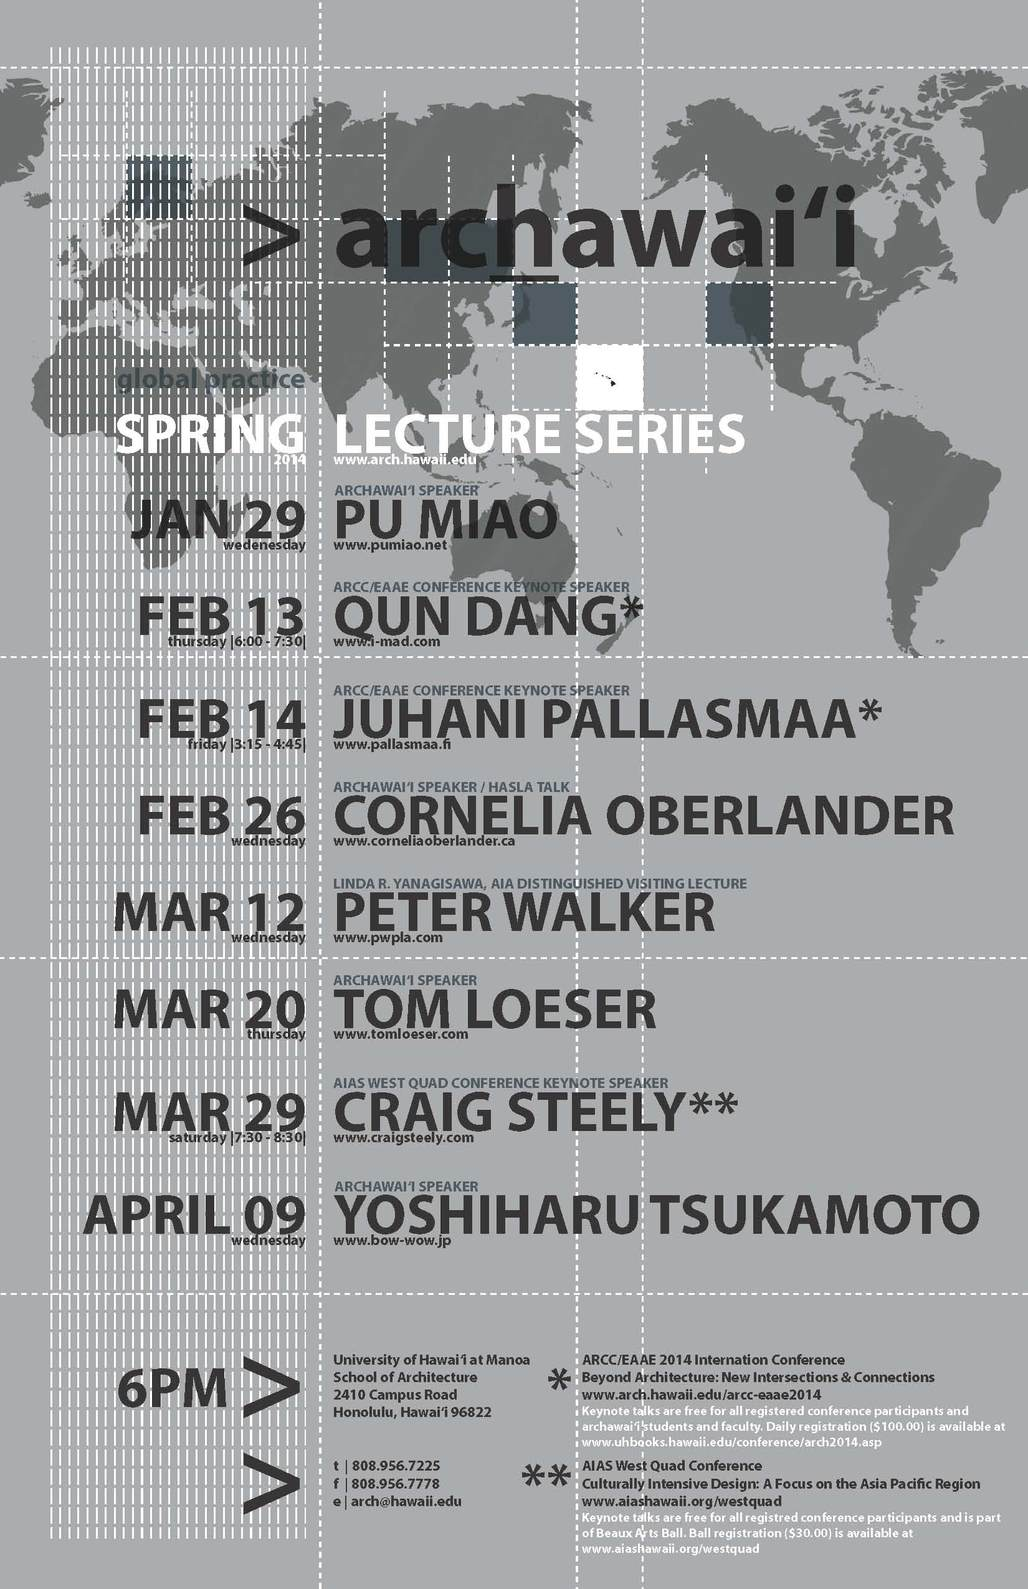 Spring 14 Lecture Series at the University of Hawaii at Manoa, School of Architecture. Image via arch.hawaii.edu